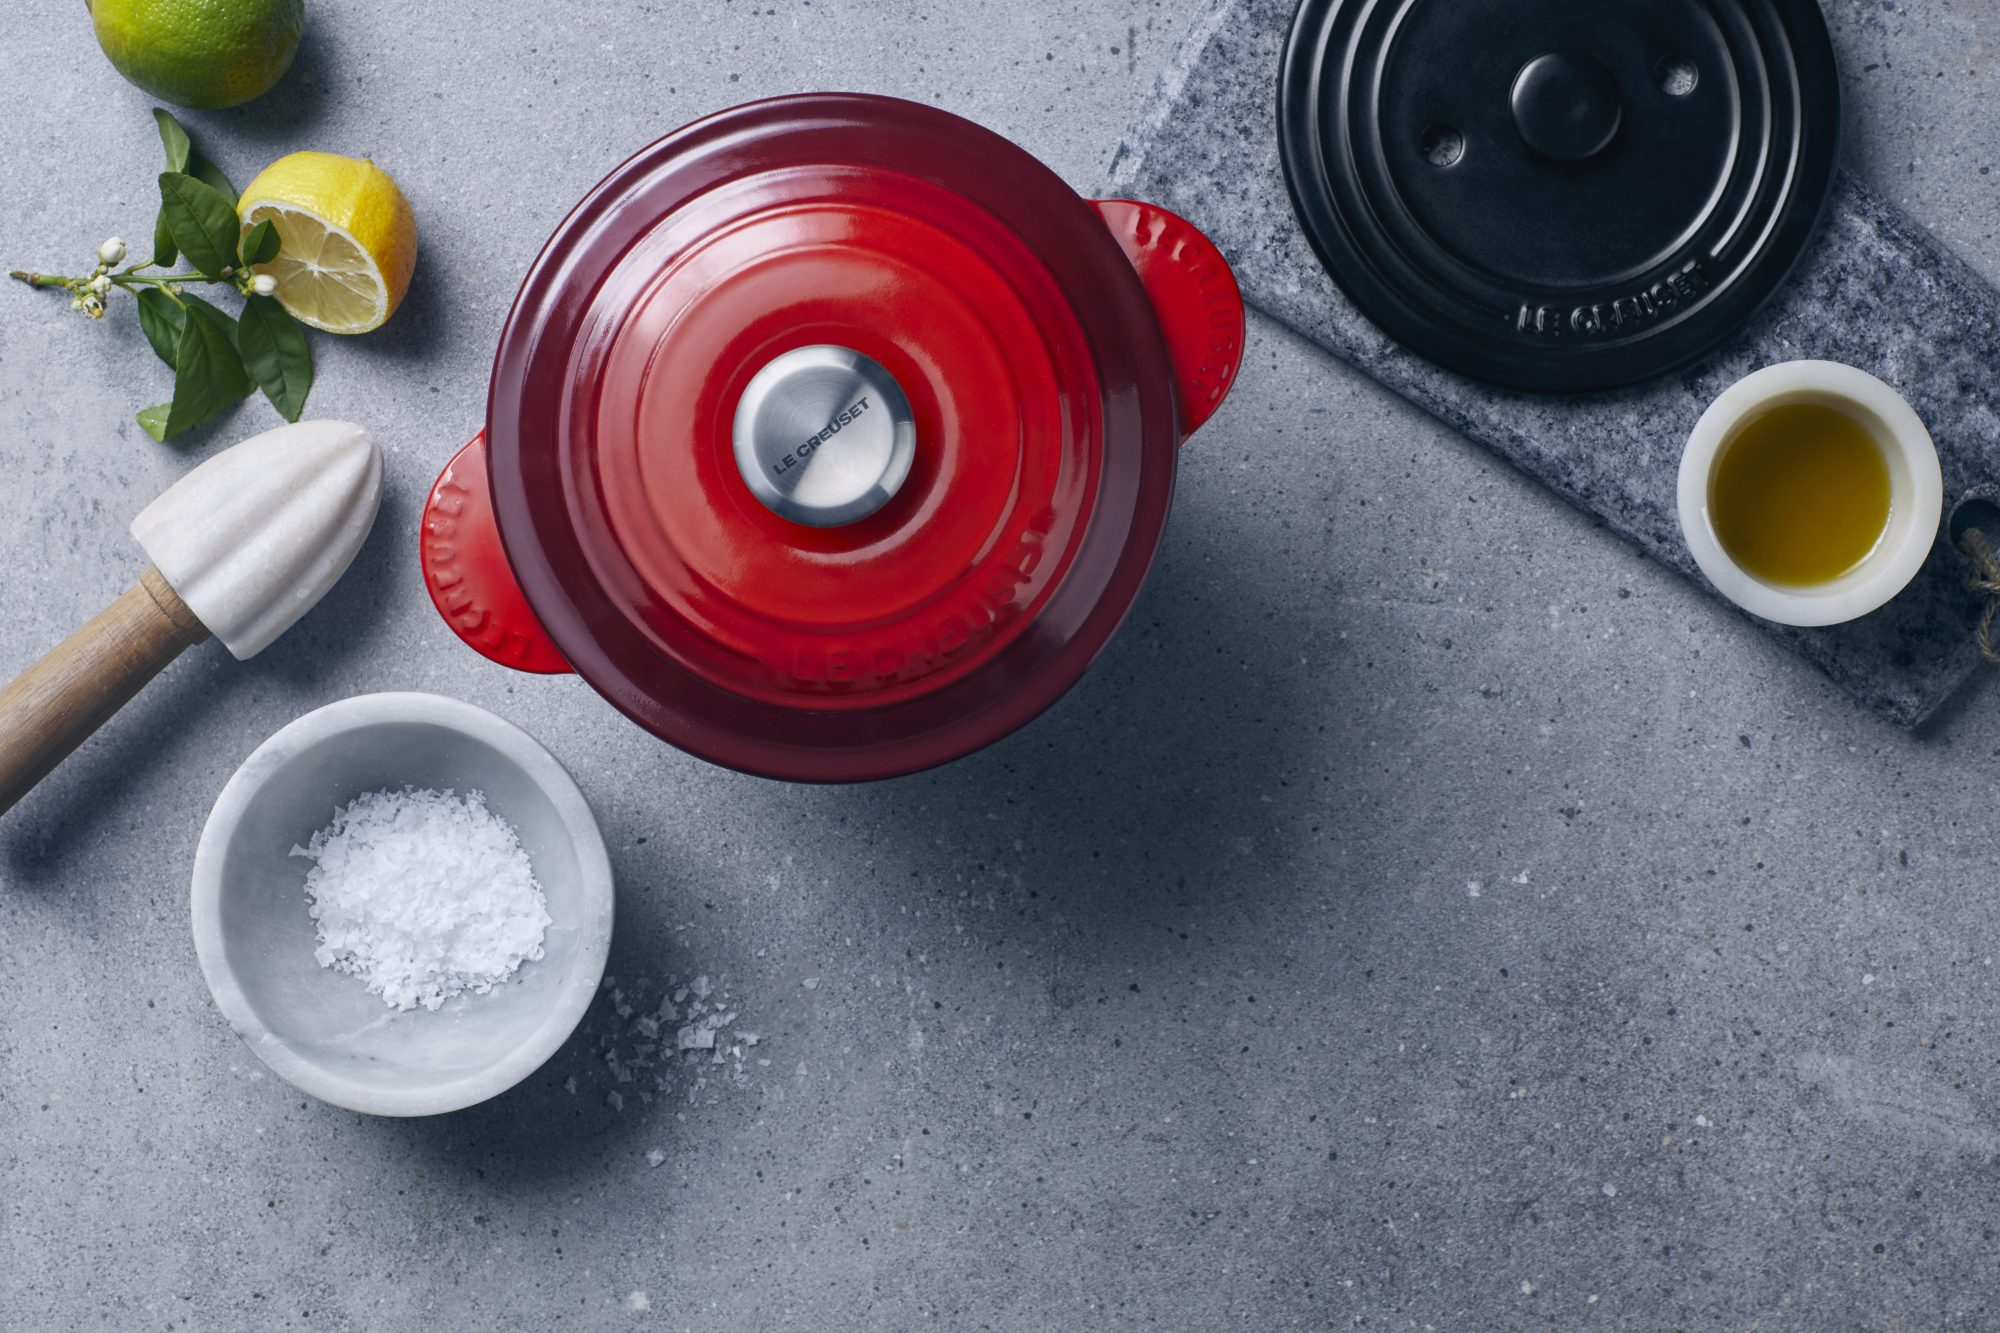 Le Creuset Has A New Rice Pot So We Tried It Against An Electric